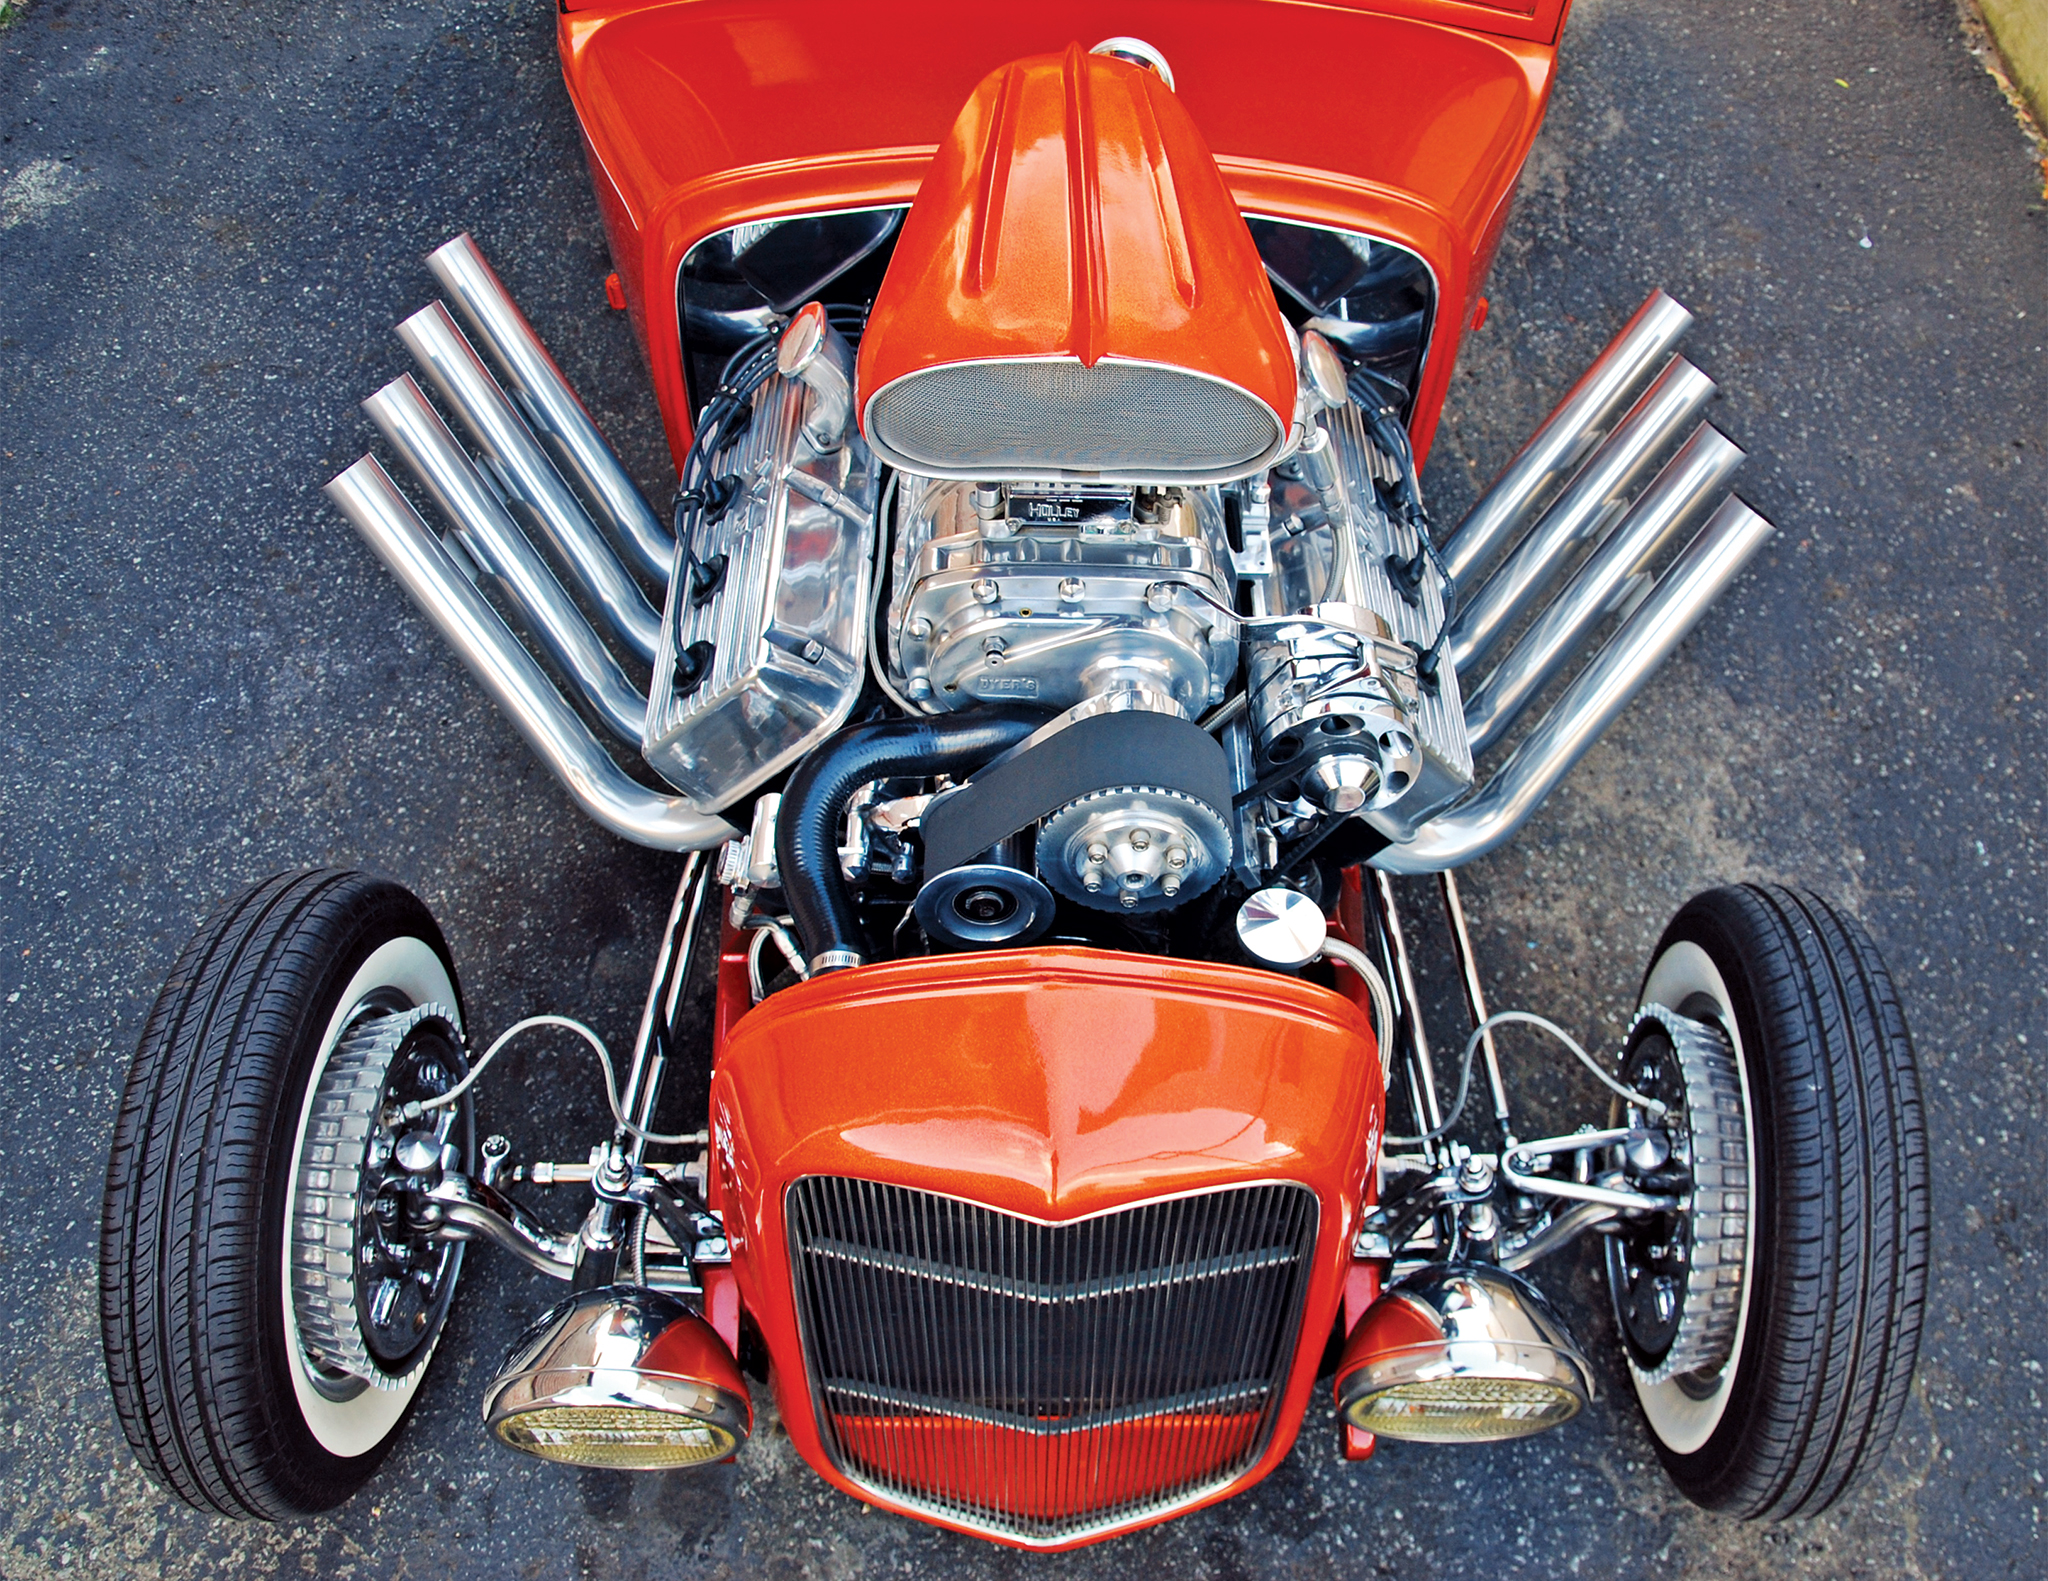 It was during the third owner's tenure that the flattie was swapped for the blown 392. When Vinny bought the car in 1999, it had contemporary headers and a nitrous kit. Vinny drove it that way for a while but decided to take a more traditional route when the car was turned away from a Road Agents show.